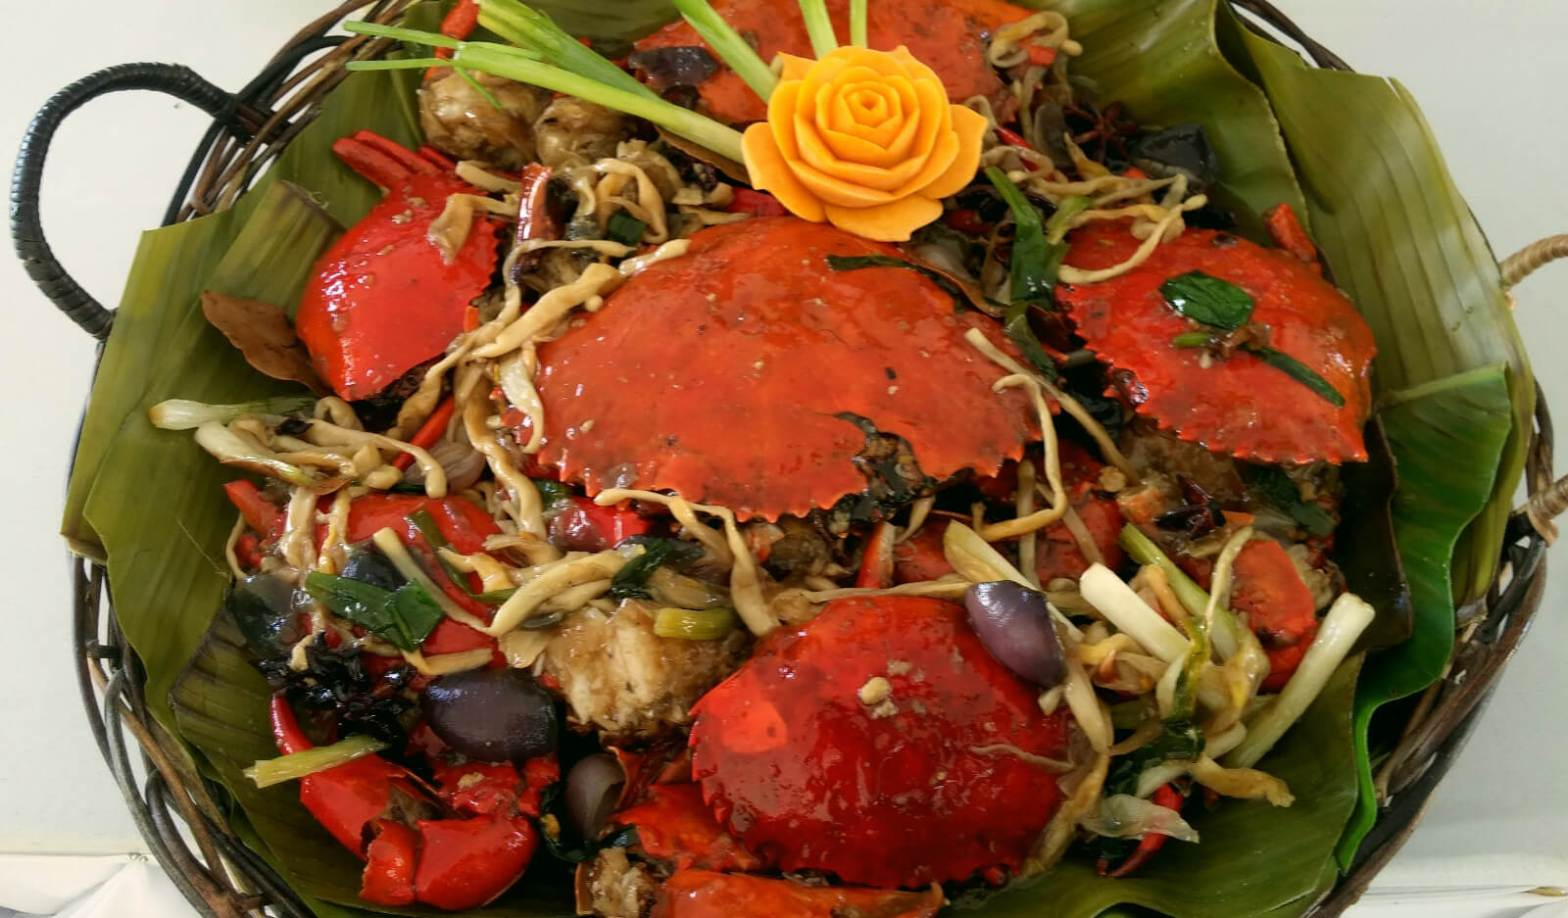 Eats Meets West Cebu culinary competition